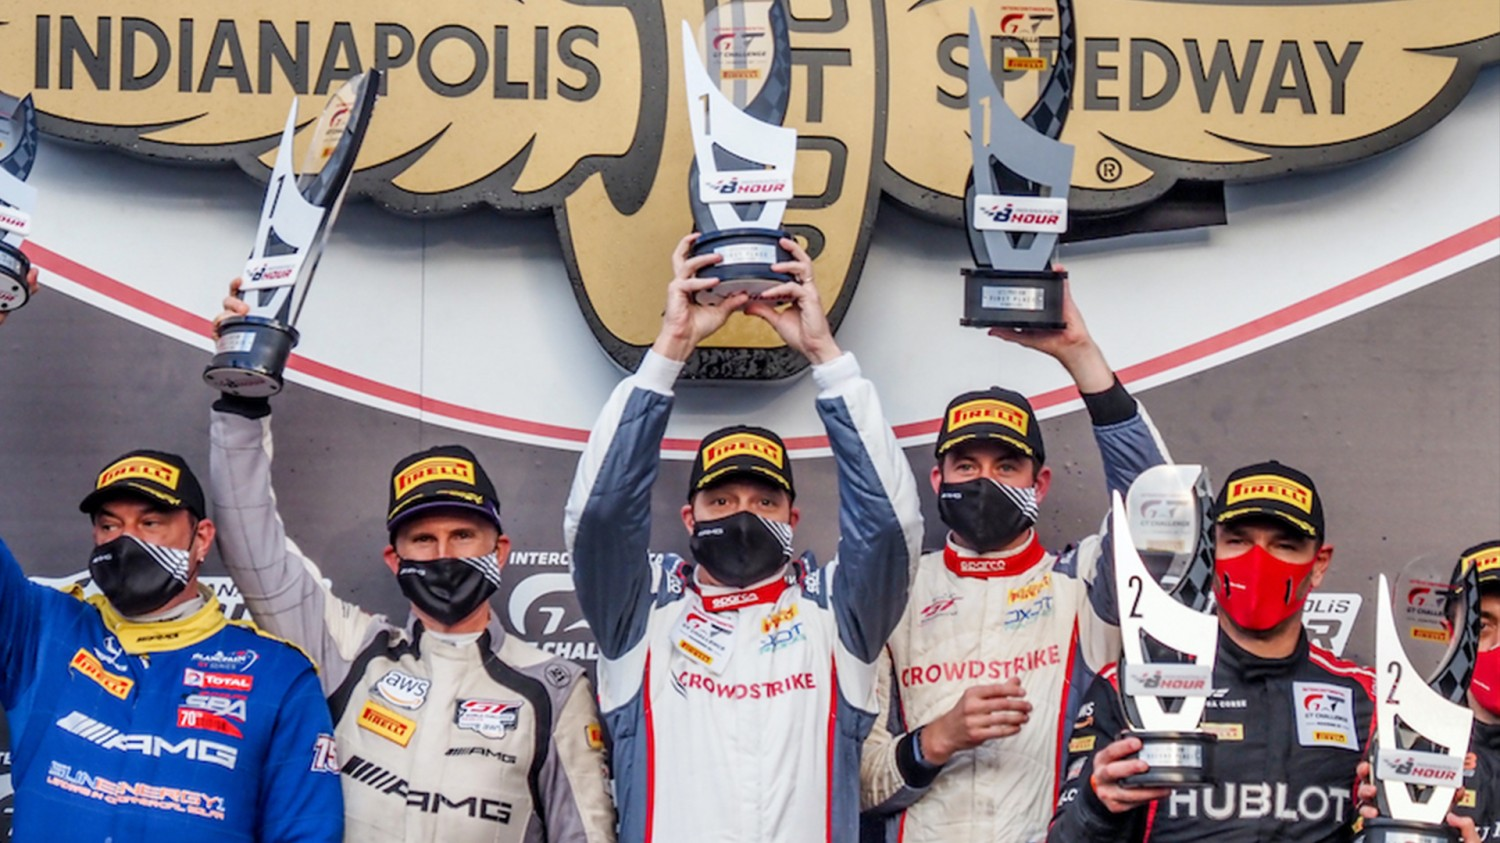 CrowdStrike a Big Winner at Indianapolis in SRO America Finale